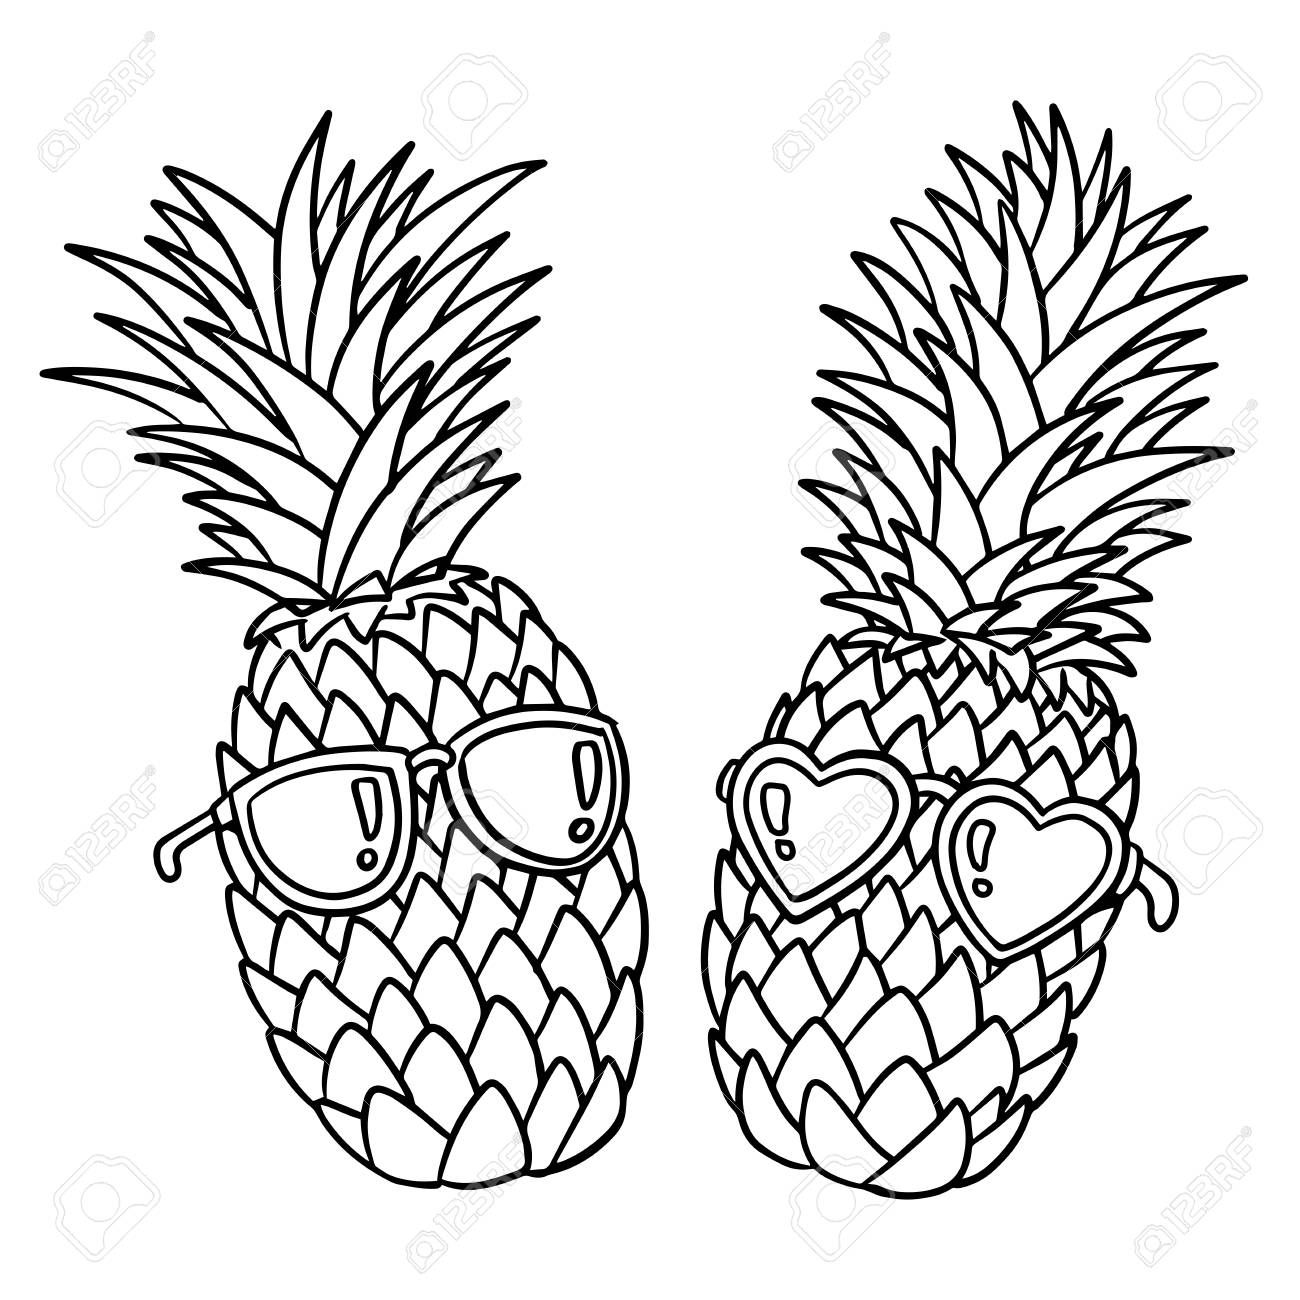 pineapple with sunglasses coloring page vector illustration of hand drawn stock vector page sunglasses with coloring pineapple